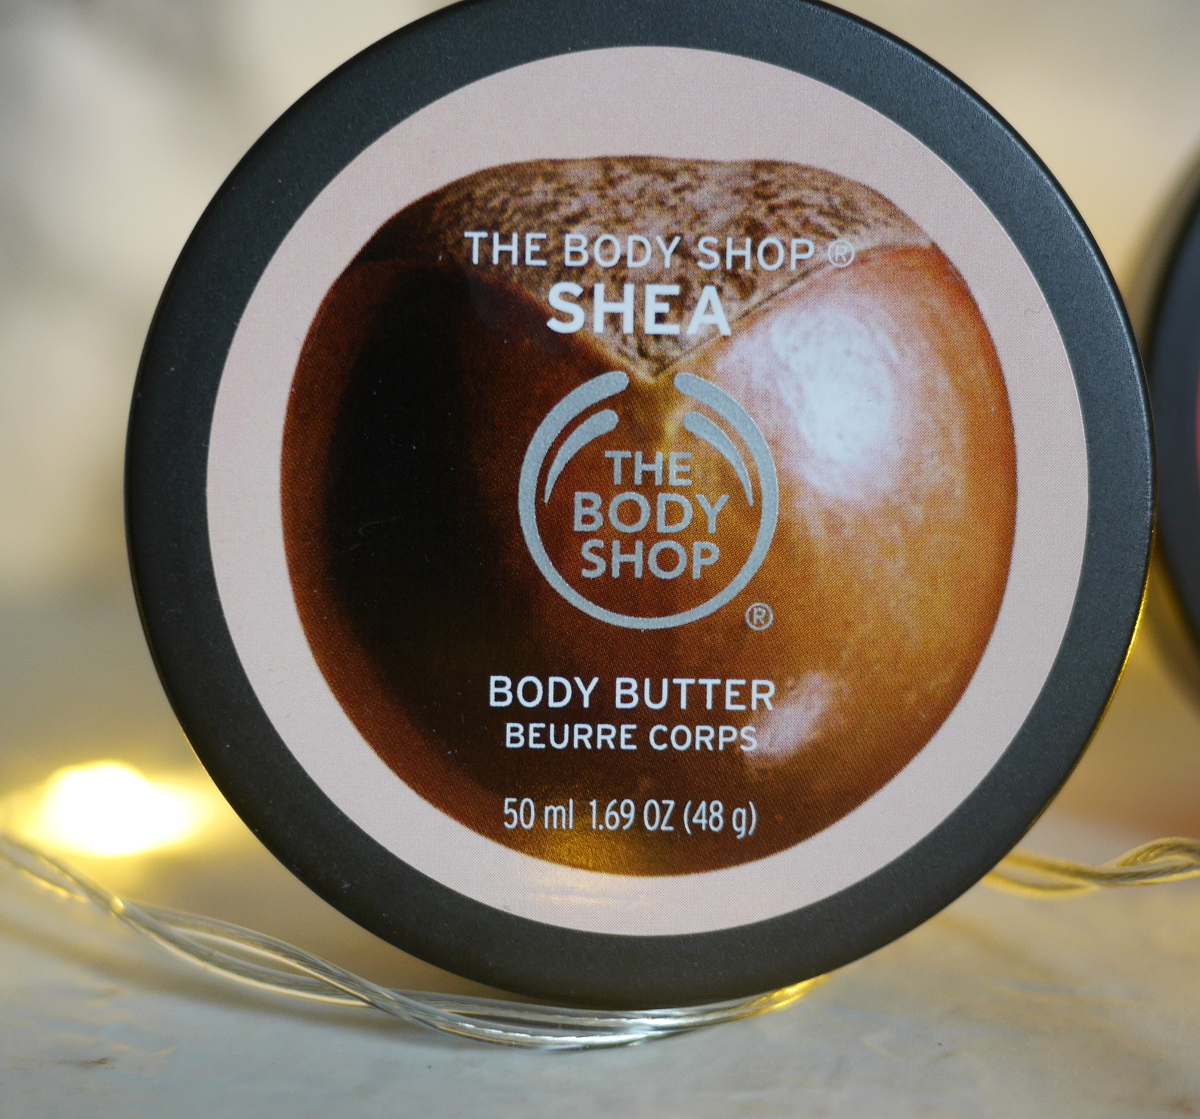 The Body Shop Best of Festive Body Butter Dome Gift 2016 Shea